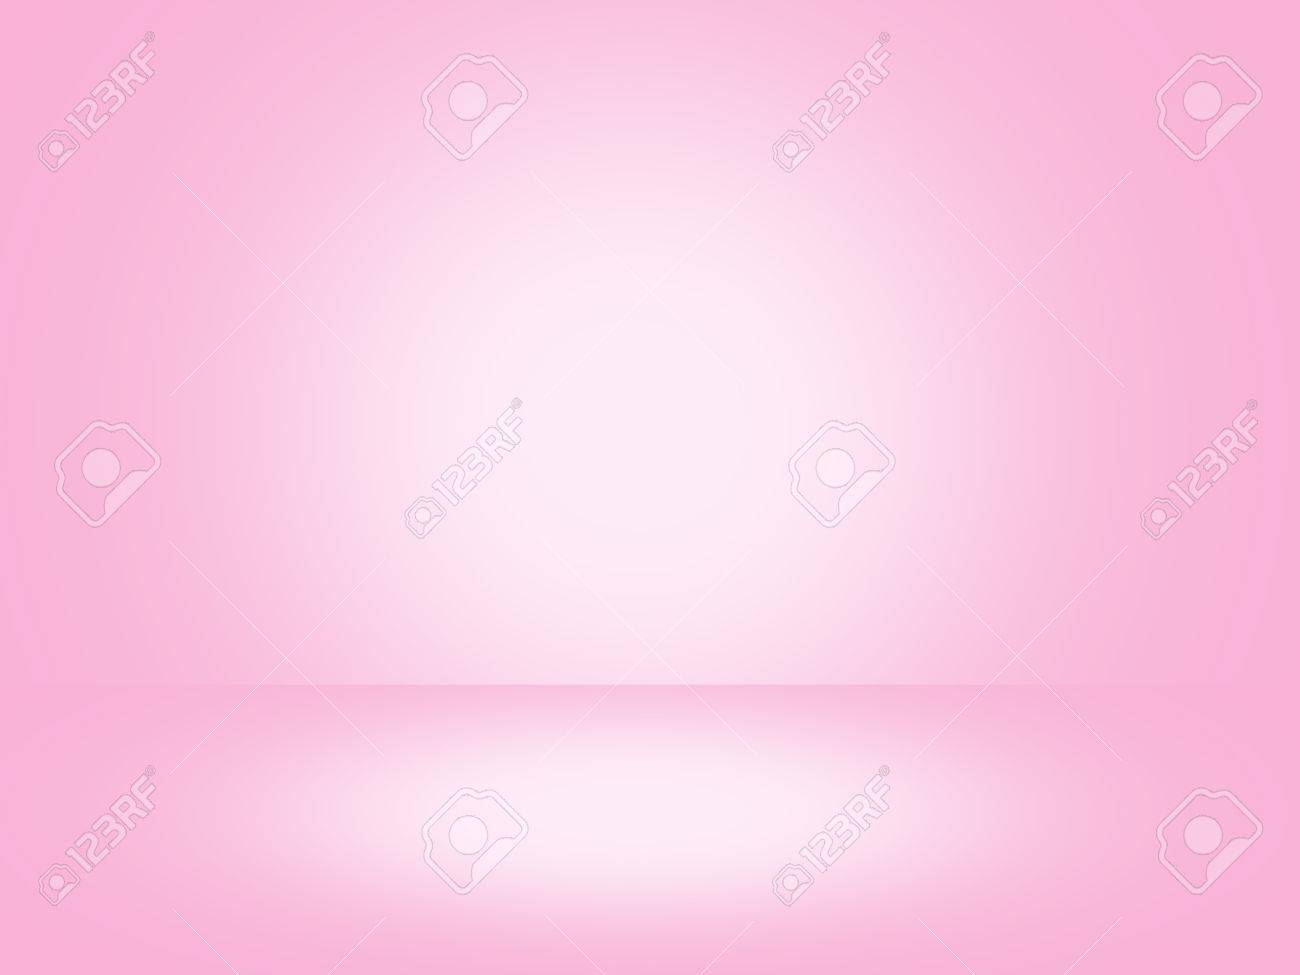 Colorful Pink Gradient Abstract Background - Free Stock Photos ...